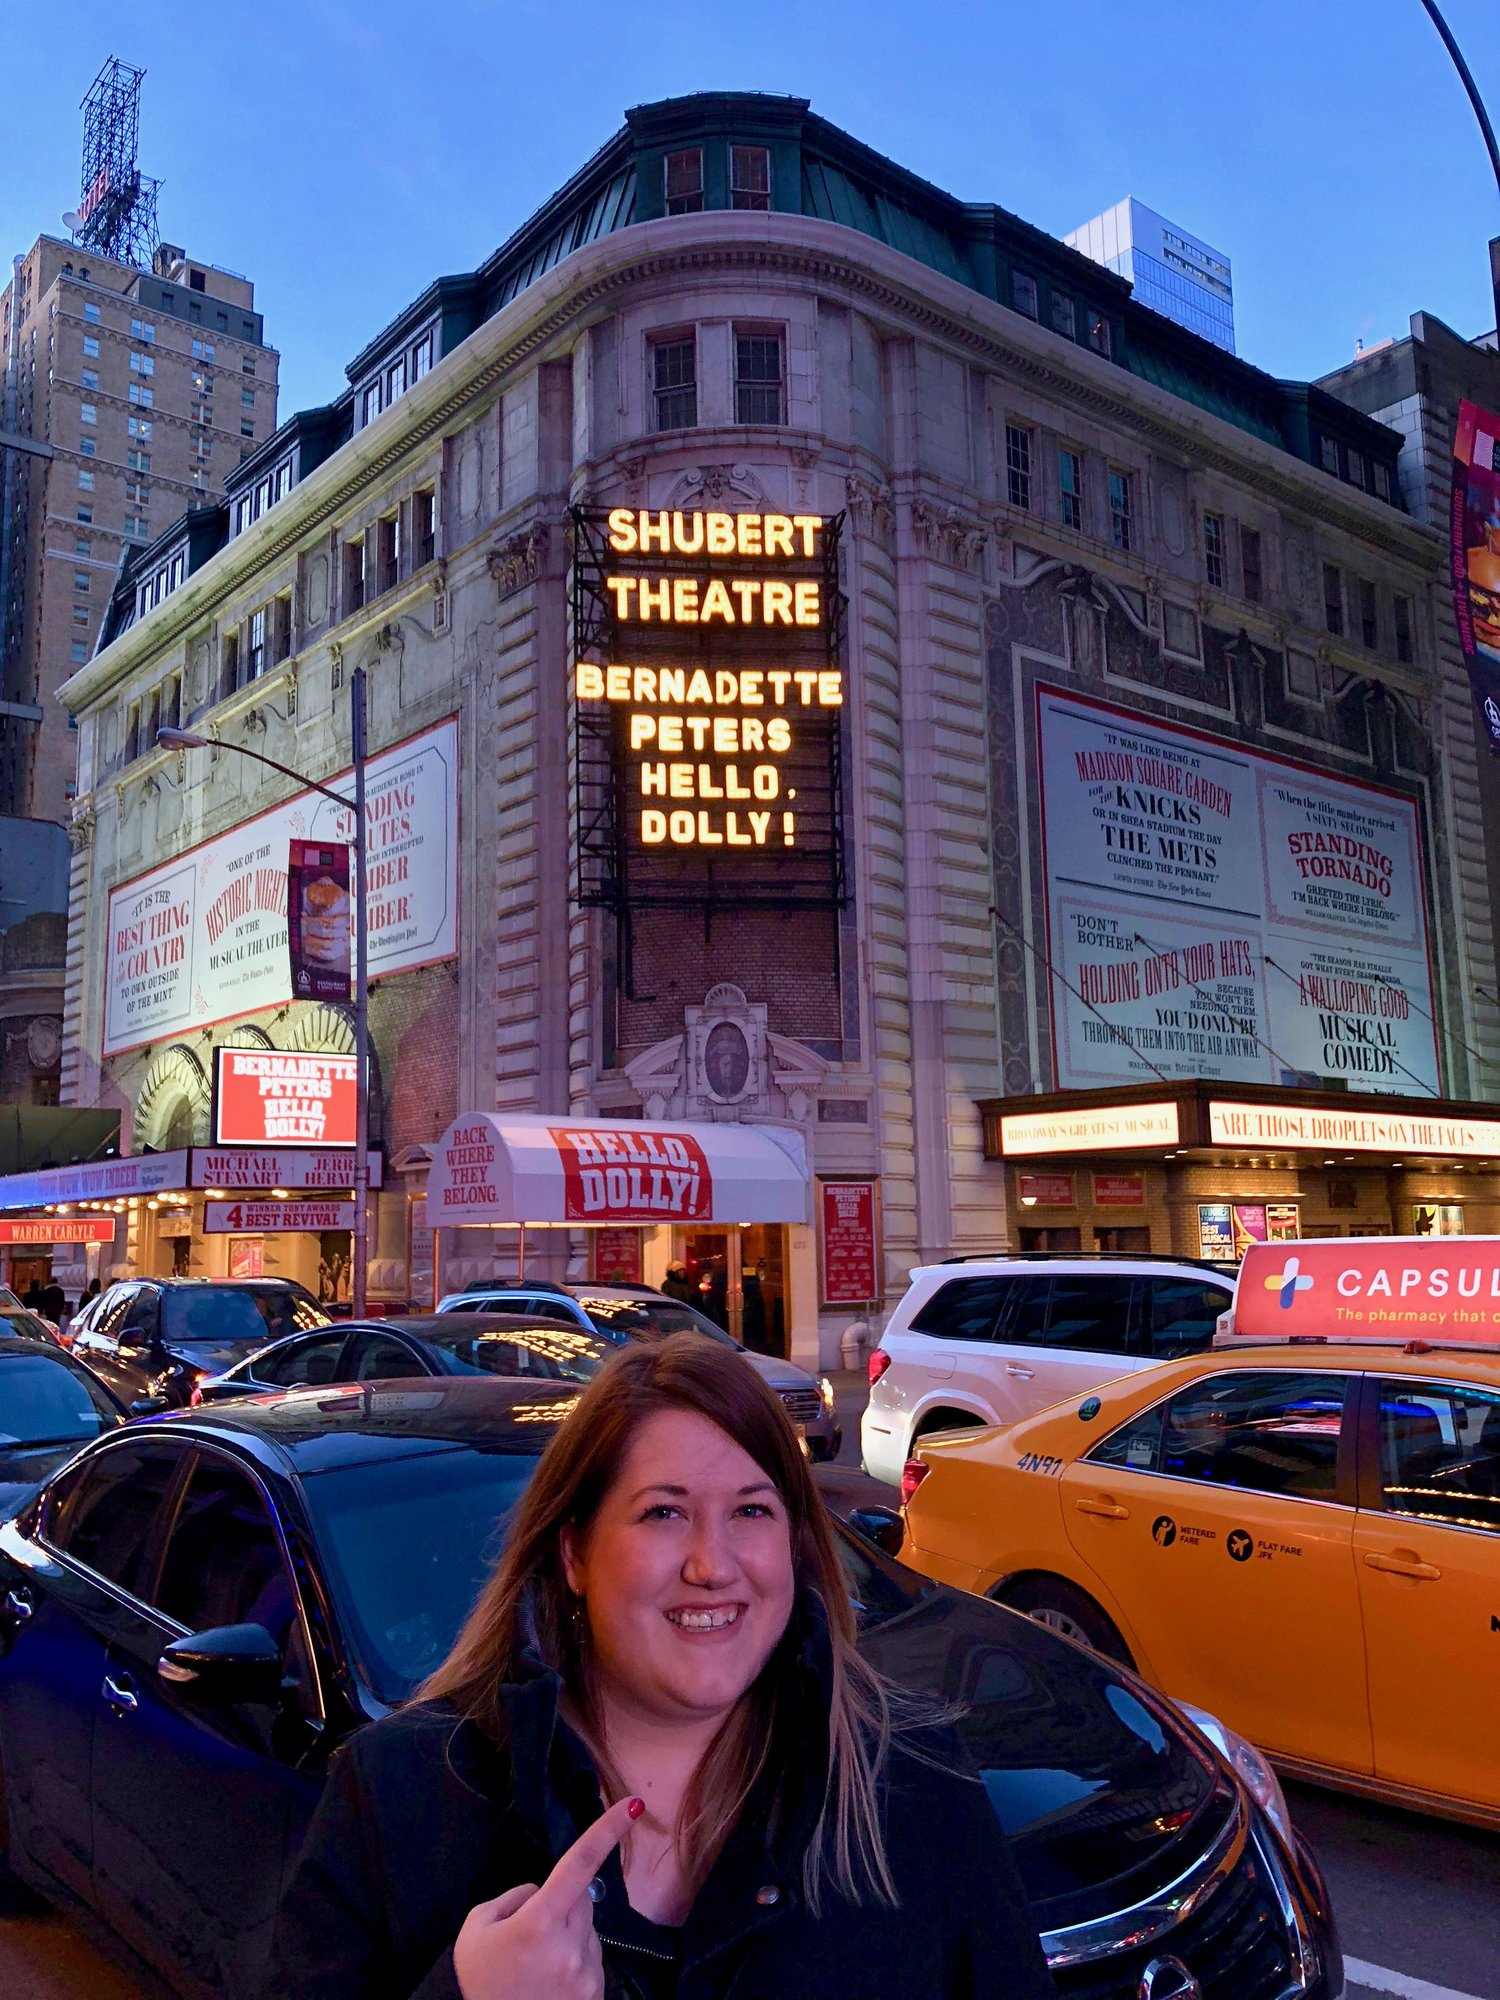 So thrilled to see Bernadette Peters on Broadway...she was fabulous!